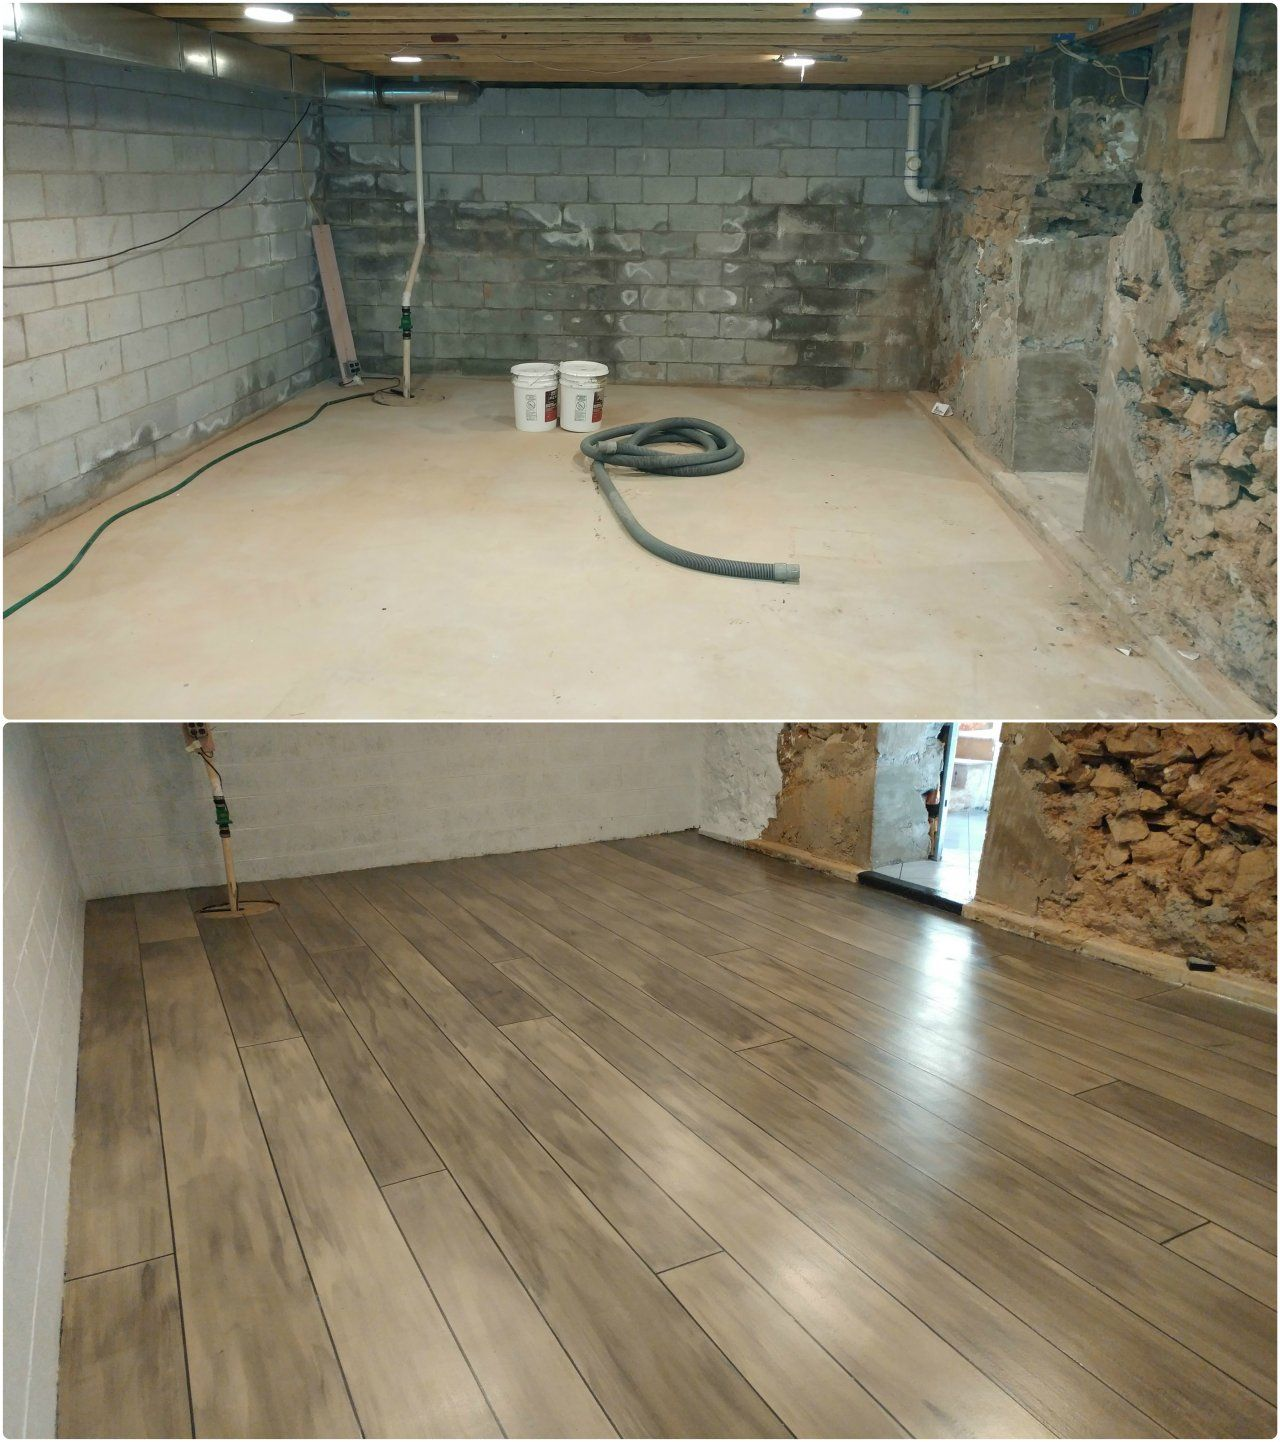 Basement refinished with concrete wood ardmore pa for Basement flooring ideas pictures